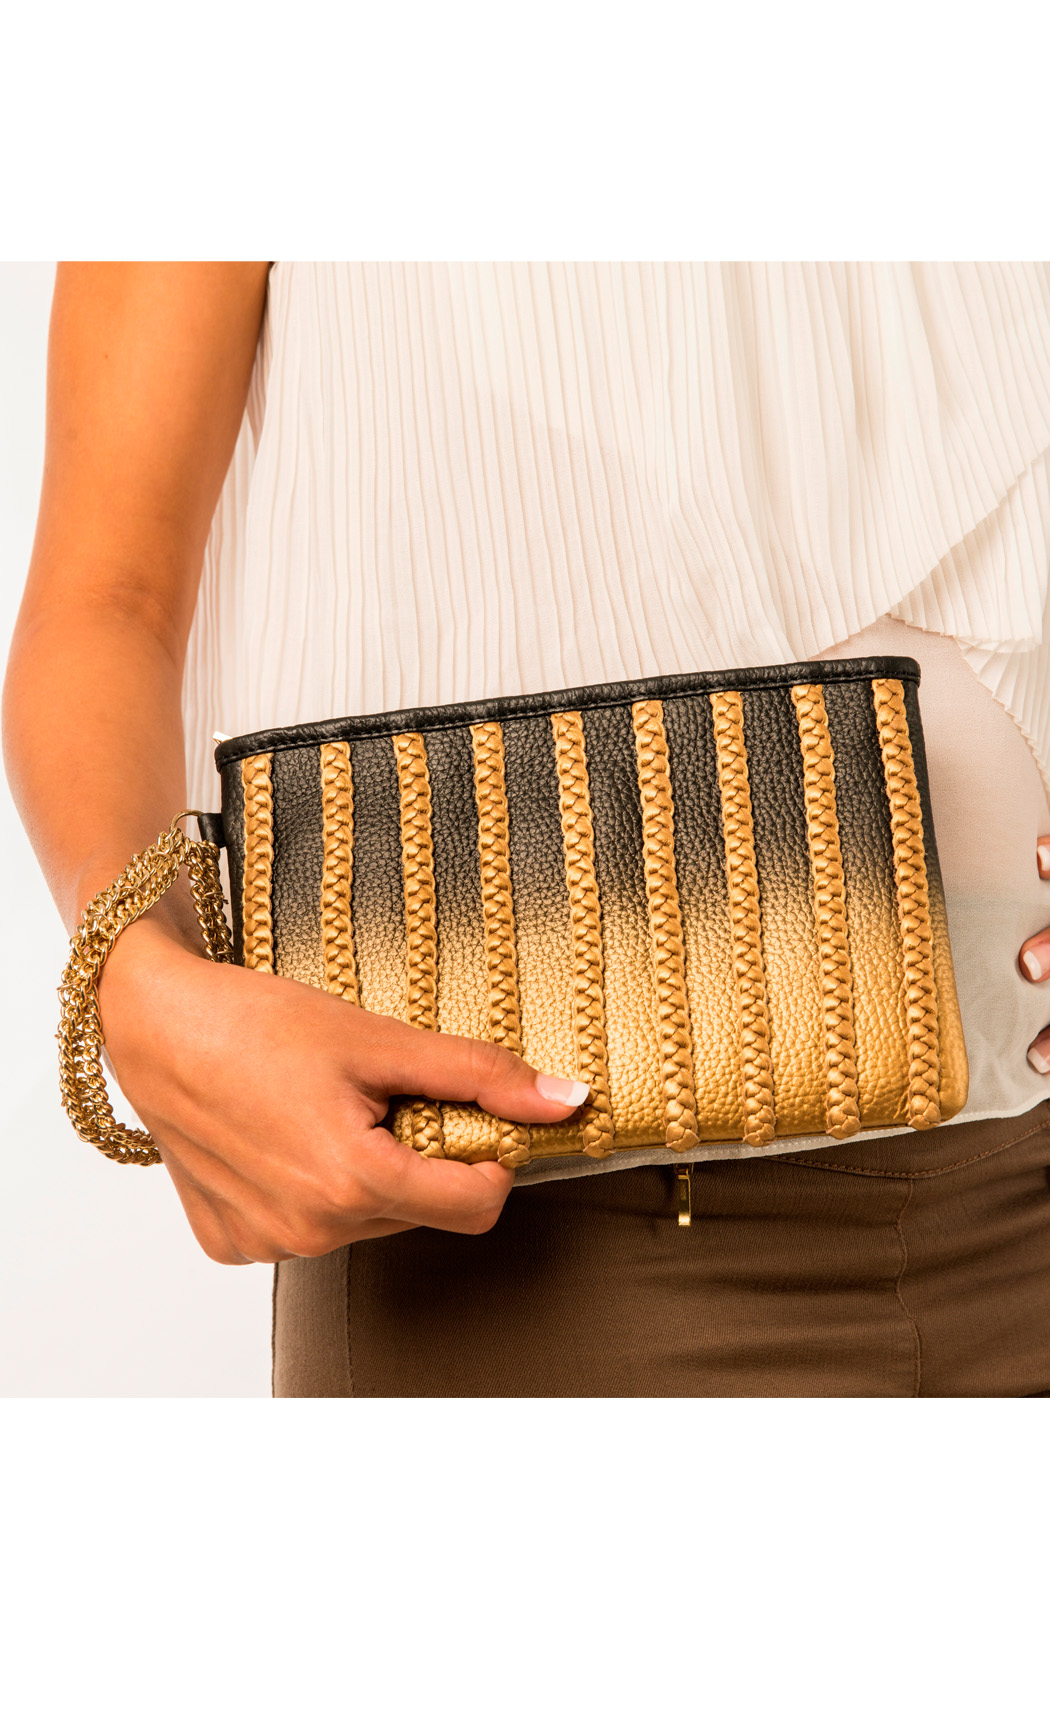 Symphony and Symmetry Plaited Wristlet in Gold-Black. Buy Online